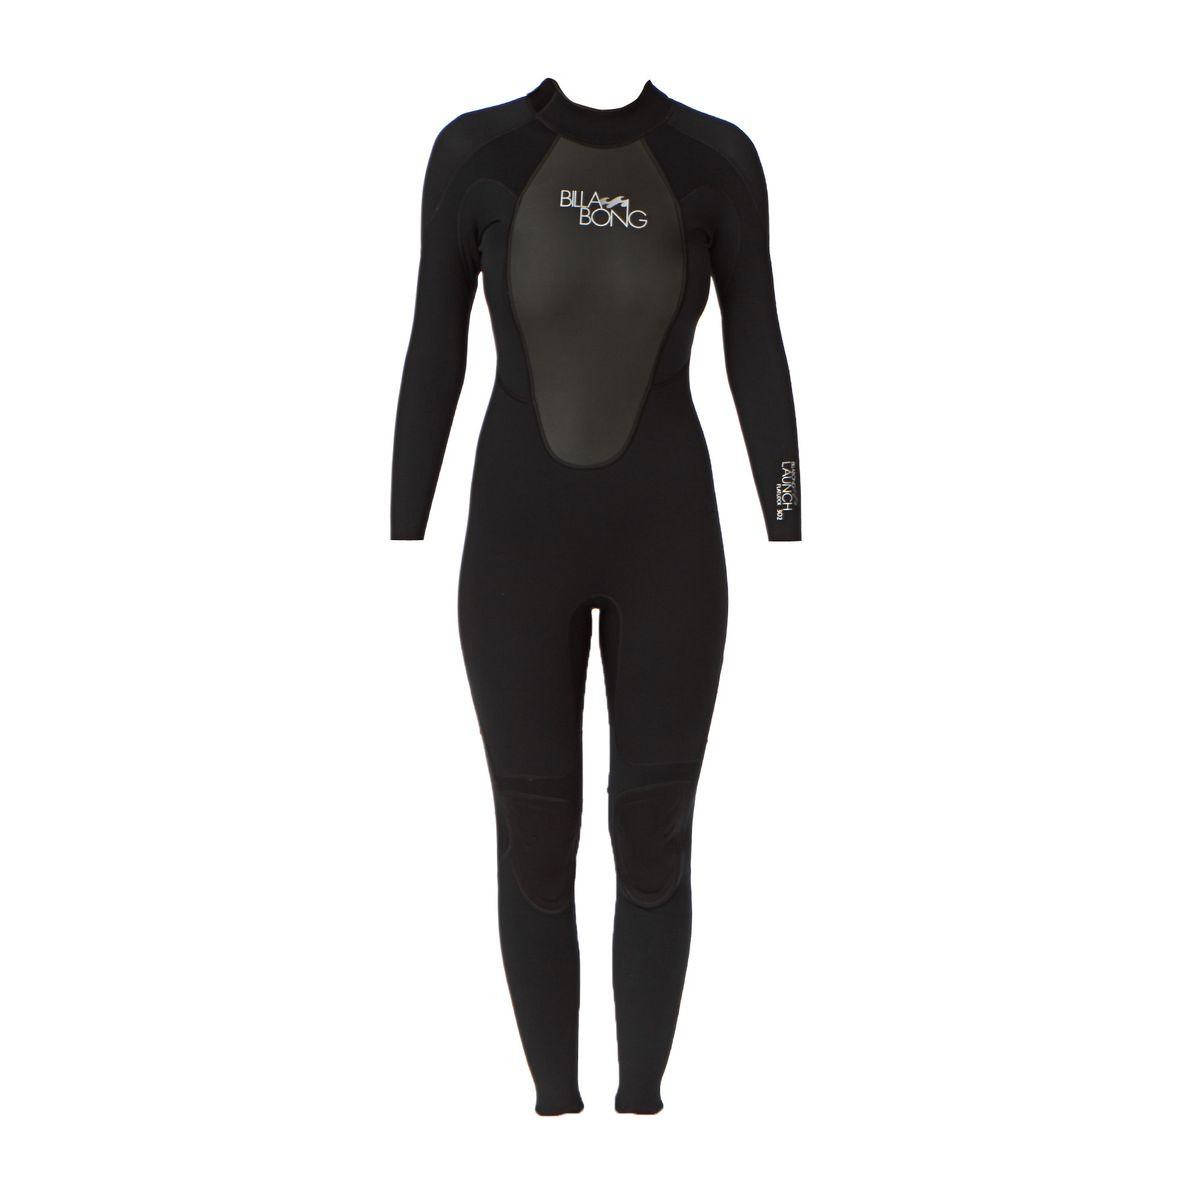 Billabong Launch 3/2mm Back Zip Fl Wetsuit - Black